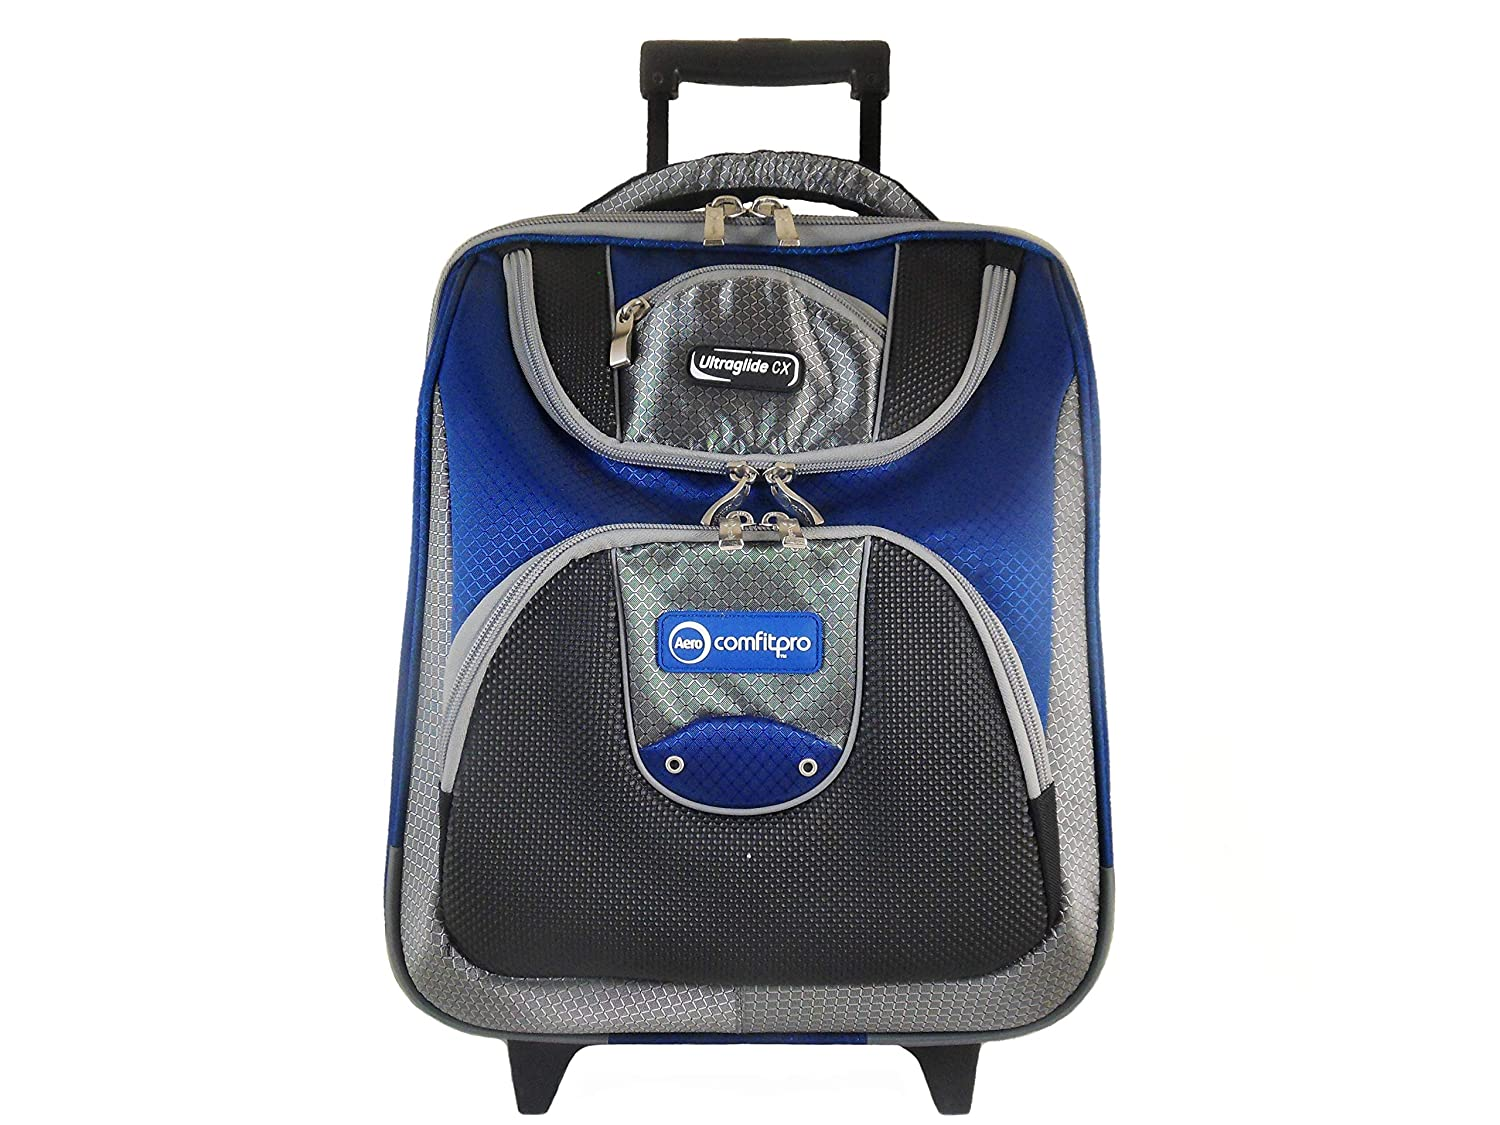 Aero ComfitPro CX Lawn Bowling Trolley Bag Blue/Black